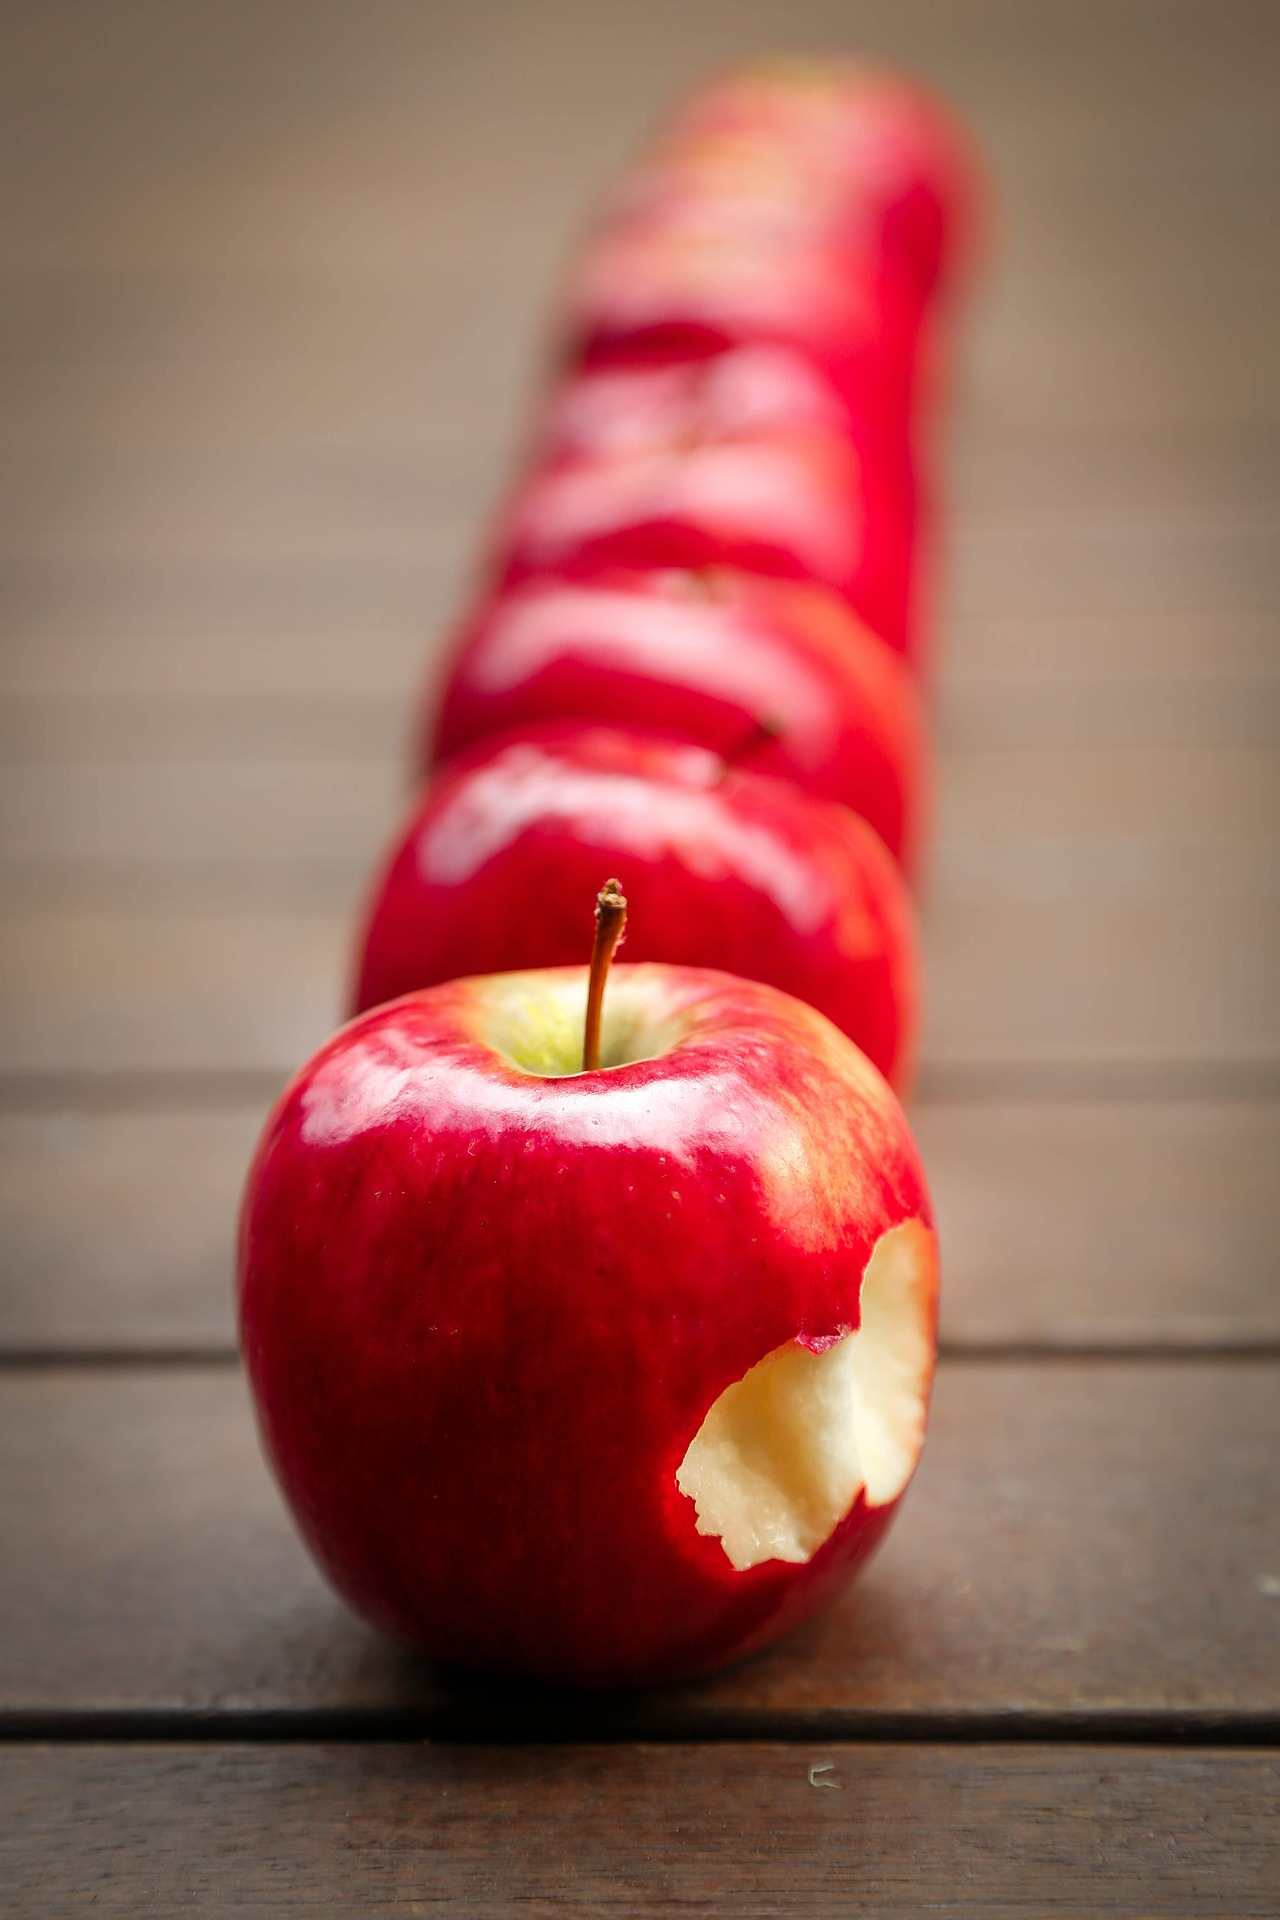 apples-Image by Tracy Lundgren from Pixabay